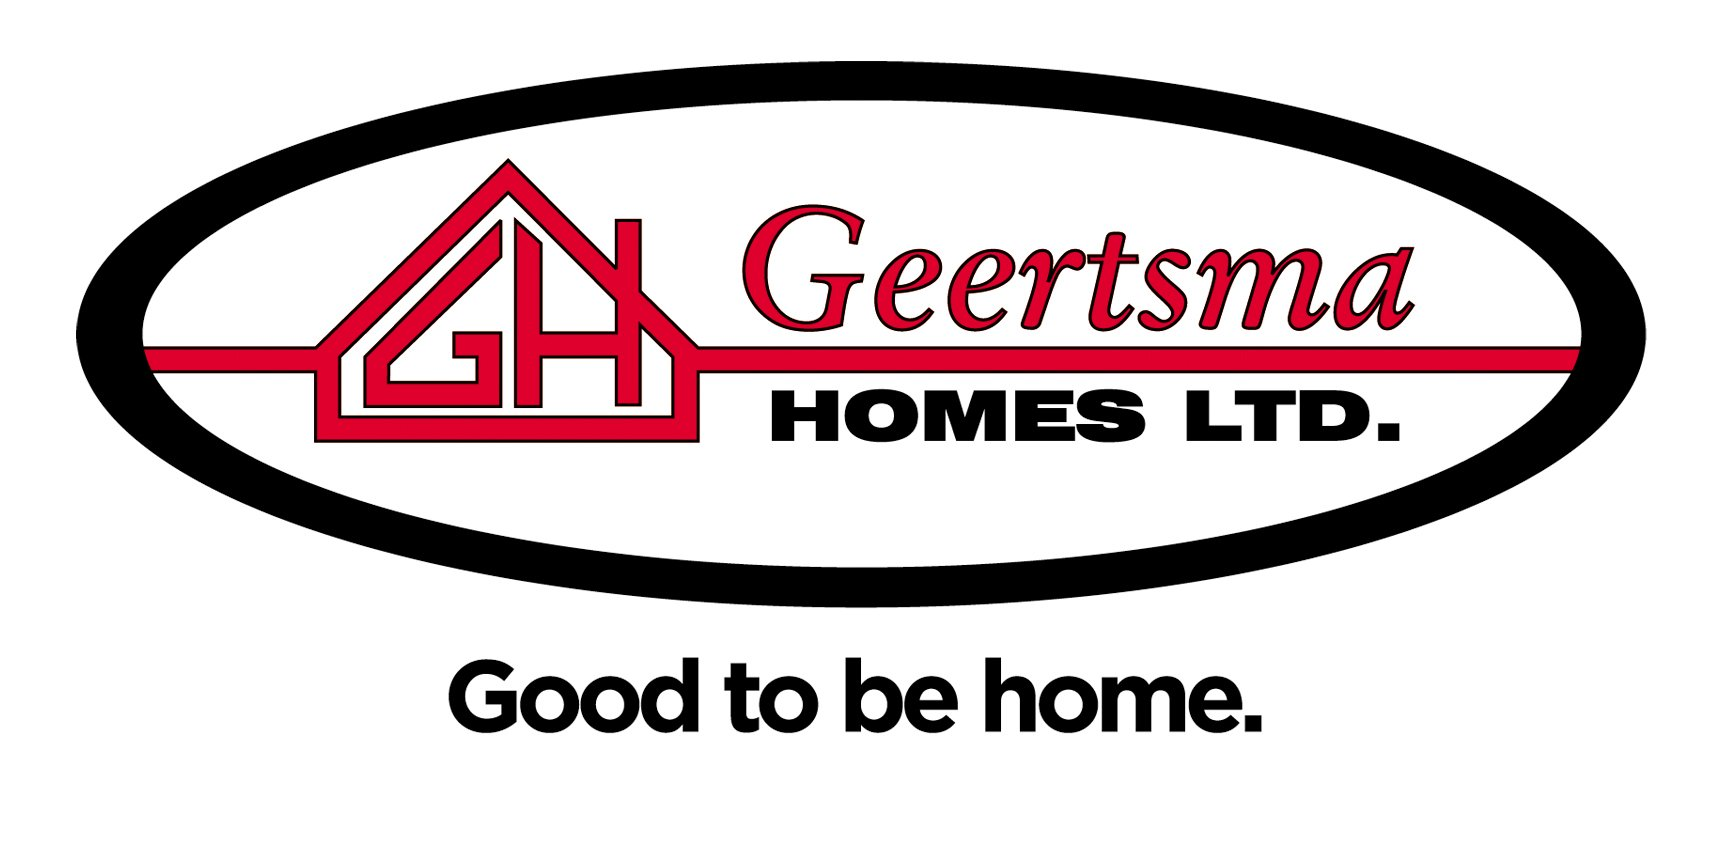 Geertsma Homes Ltd. (Stonecrest Estates)